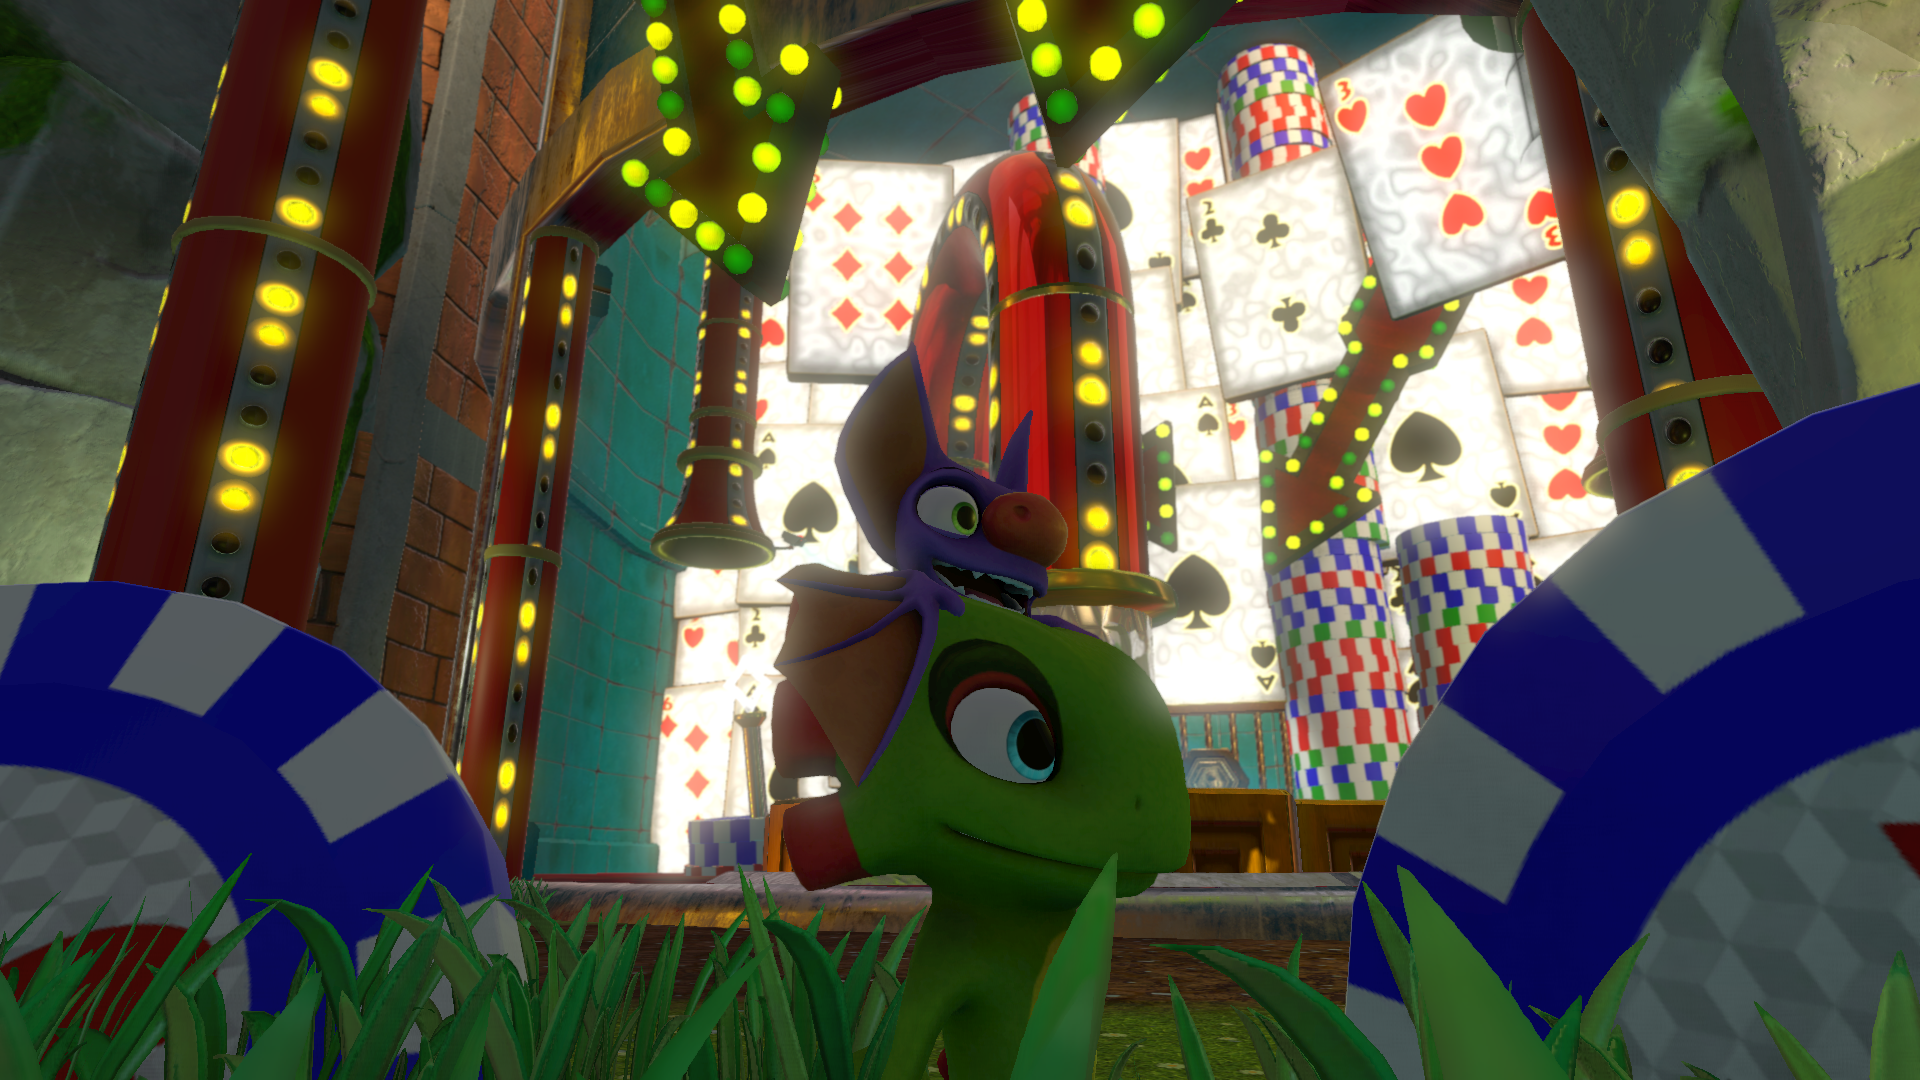 Yooka y Laylee en el Casino Capital